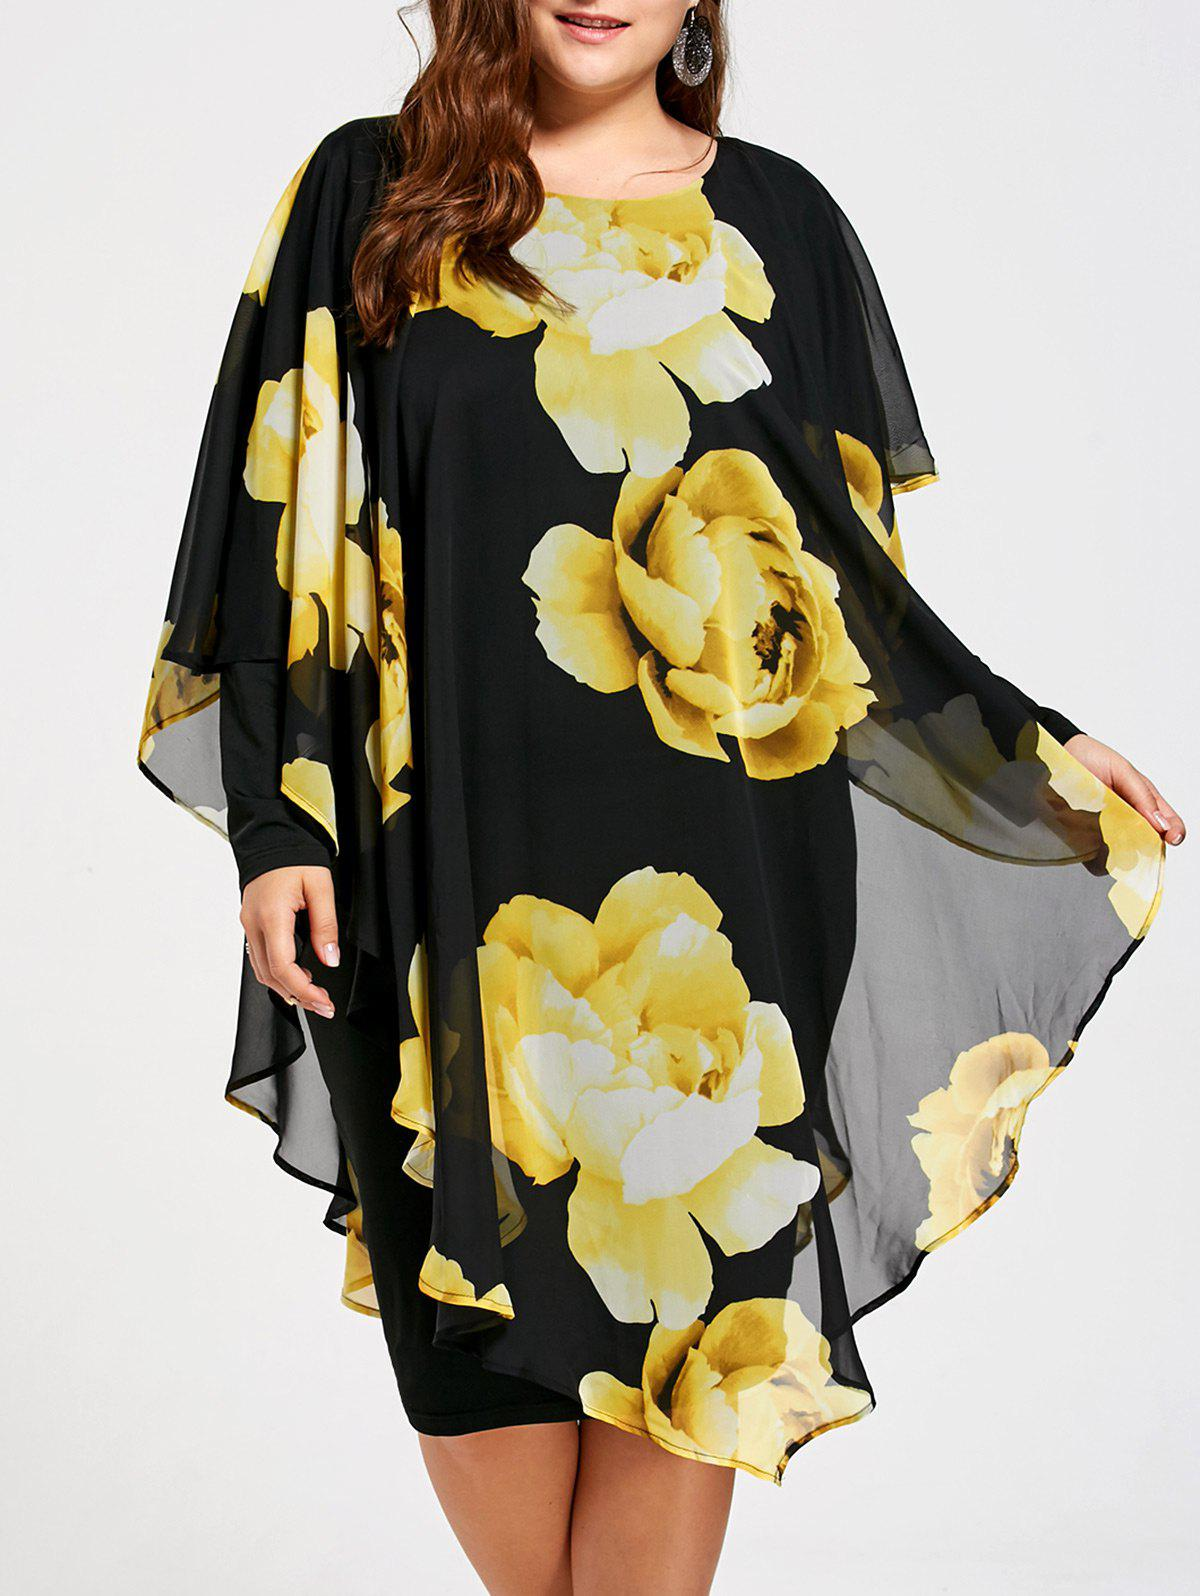 Formal Floral Plus Size Chiffon DressWOMEN<br><br>Size: 3XL; Color: COLORMIX; Style: Cute; Material: Polyester,Spandex; Silhouette: Sheath; Dresses Length: Knee-Length; Neckline: Round Collar; Sleeve Length: Long Sleeves; Pattern Type: Floral; With Belt: No; Season: Fall,Spring; Weight: 0.4700kg; Package Contents: 1 x Dress;